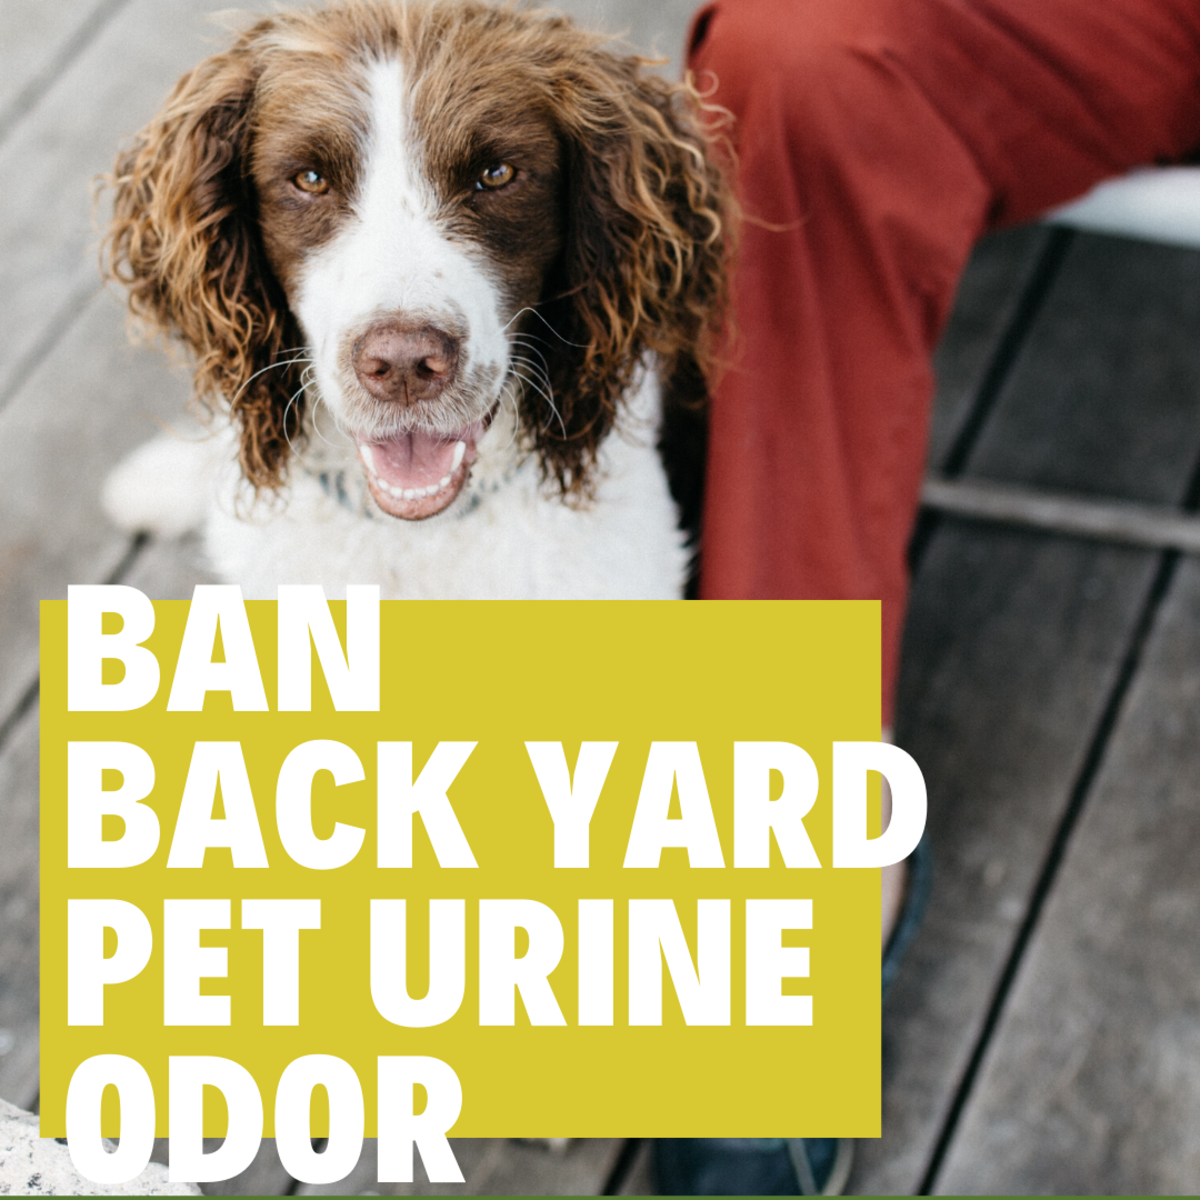 How to Get Rid of Dog Pee Smell in the Back Yard Naturally